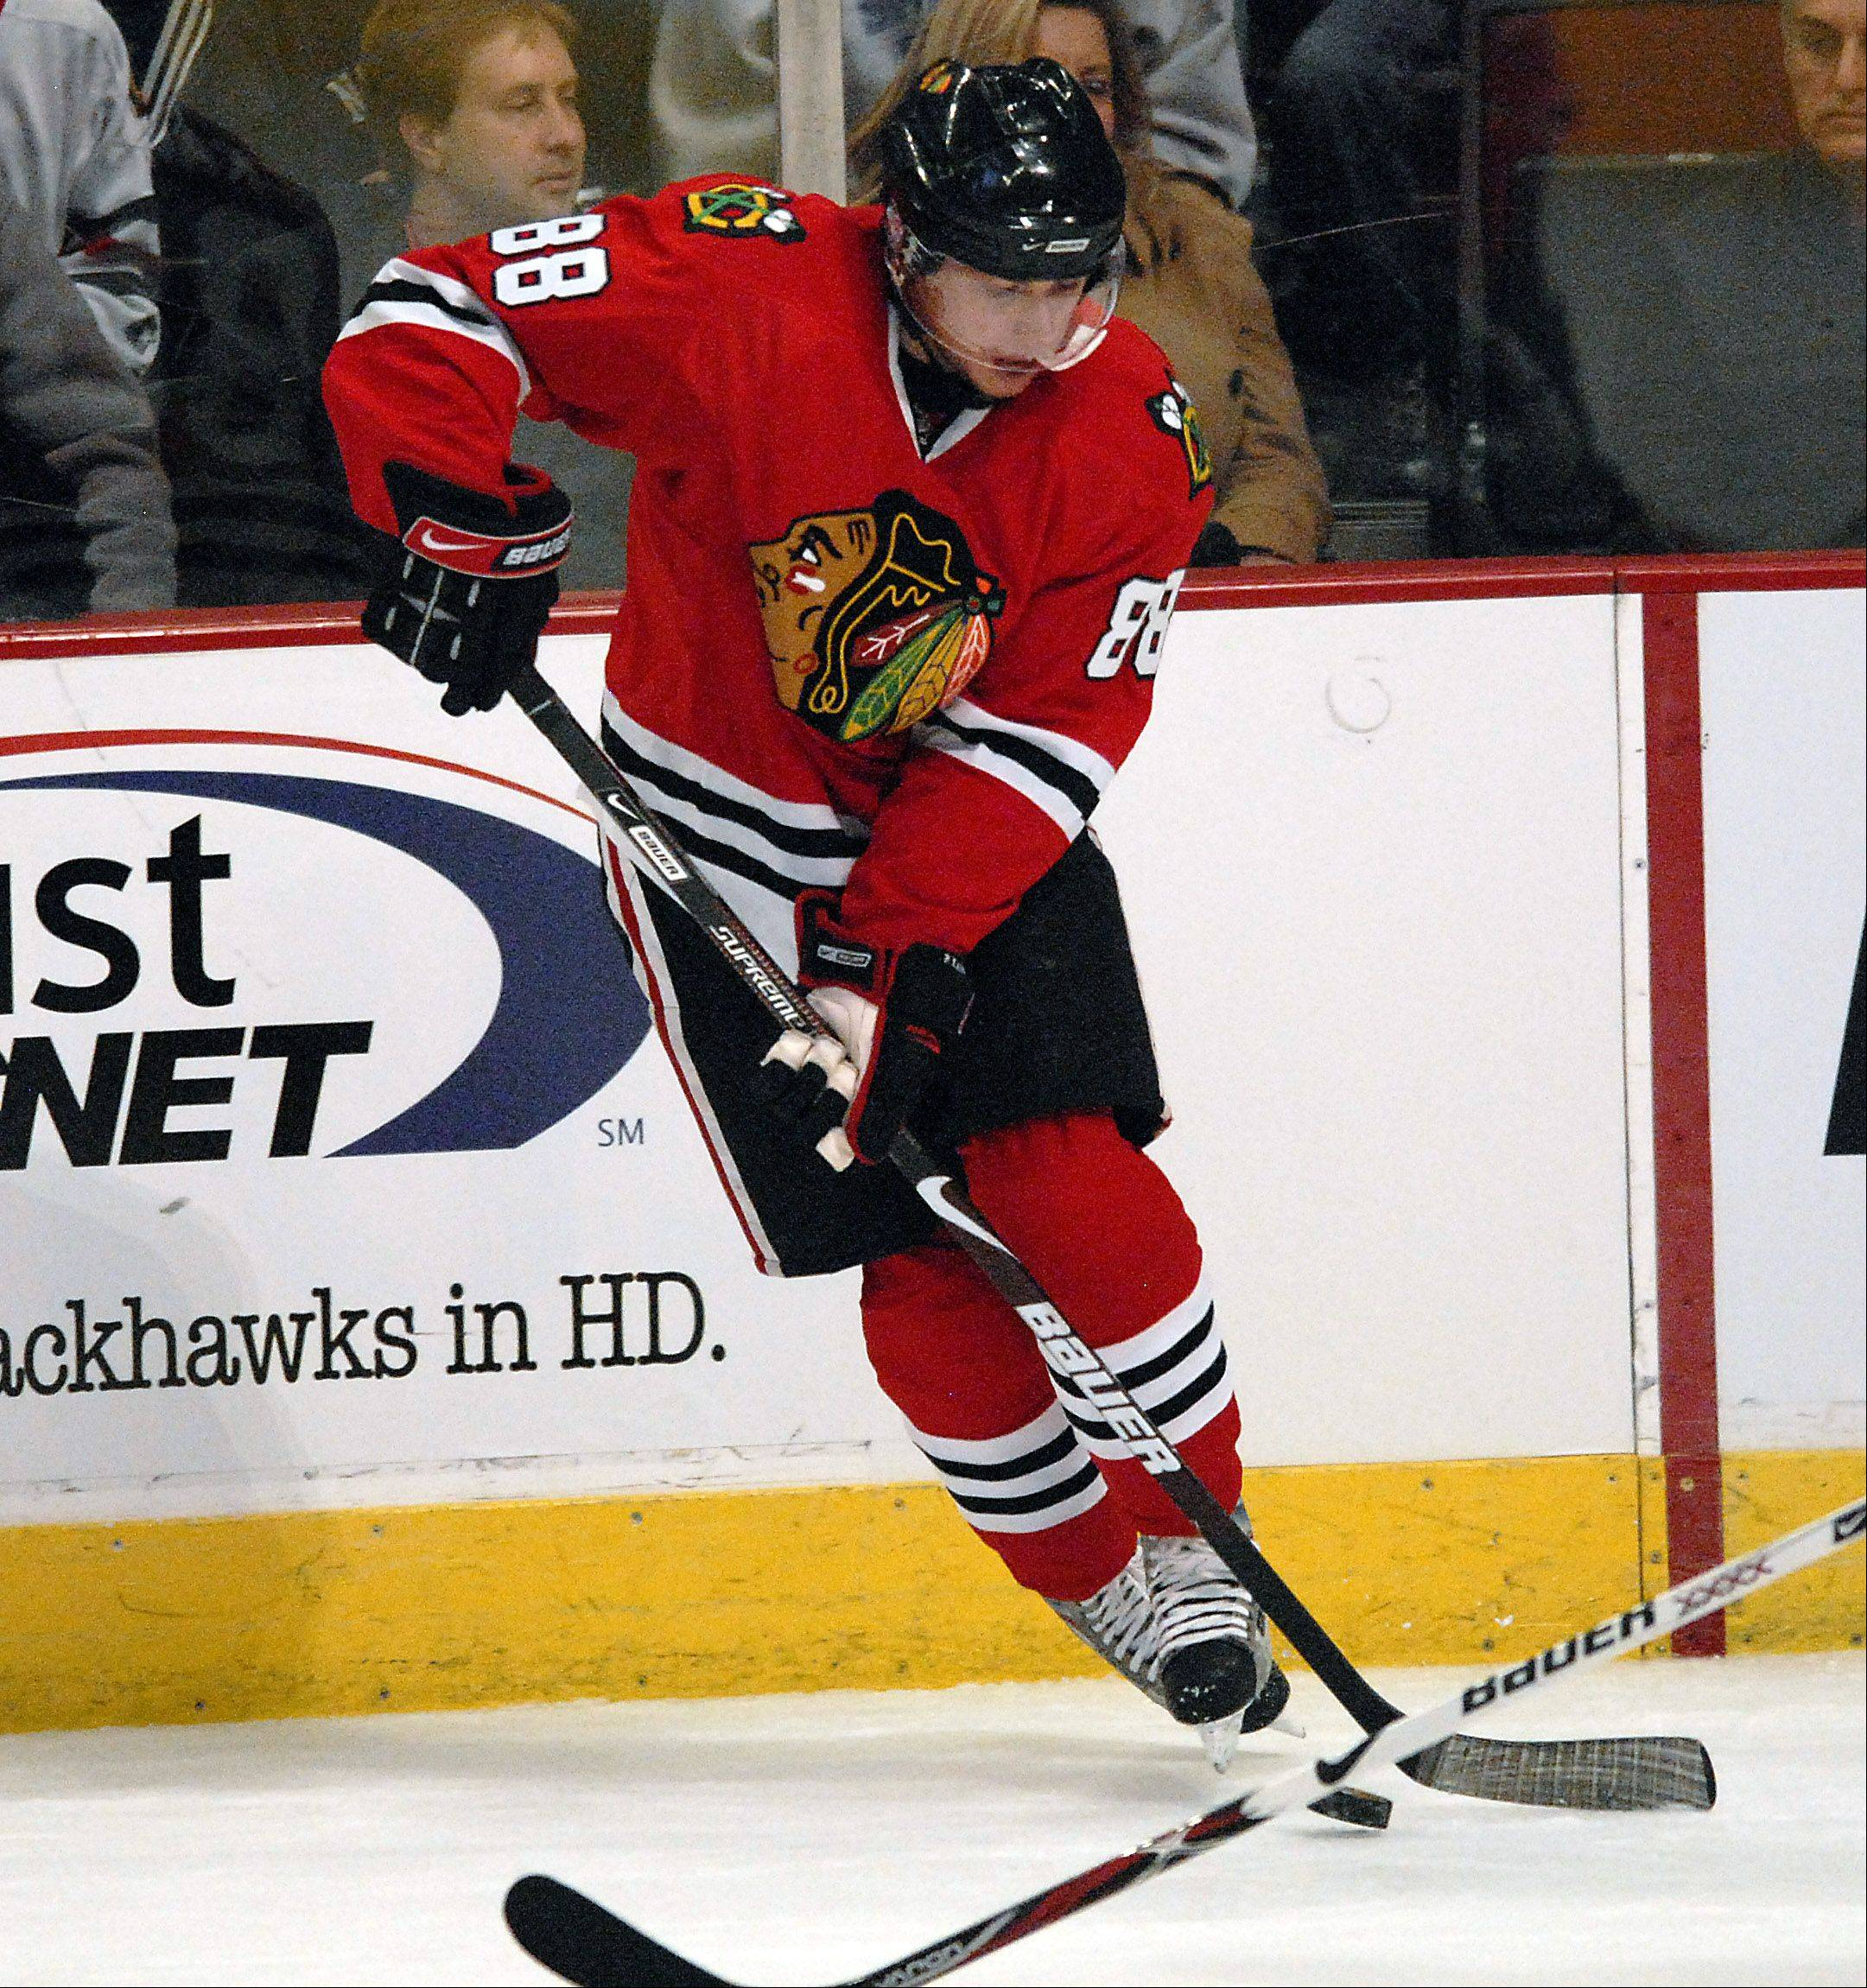 Patrick Kane, recovering from wrist surgery, believes he will be back before the end of the Blackhawks' preseason schedule.